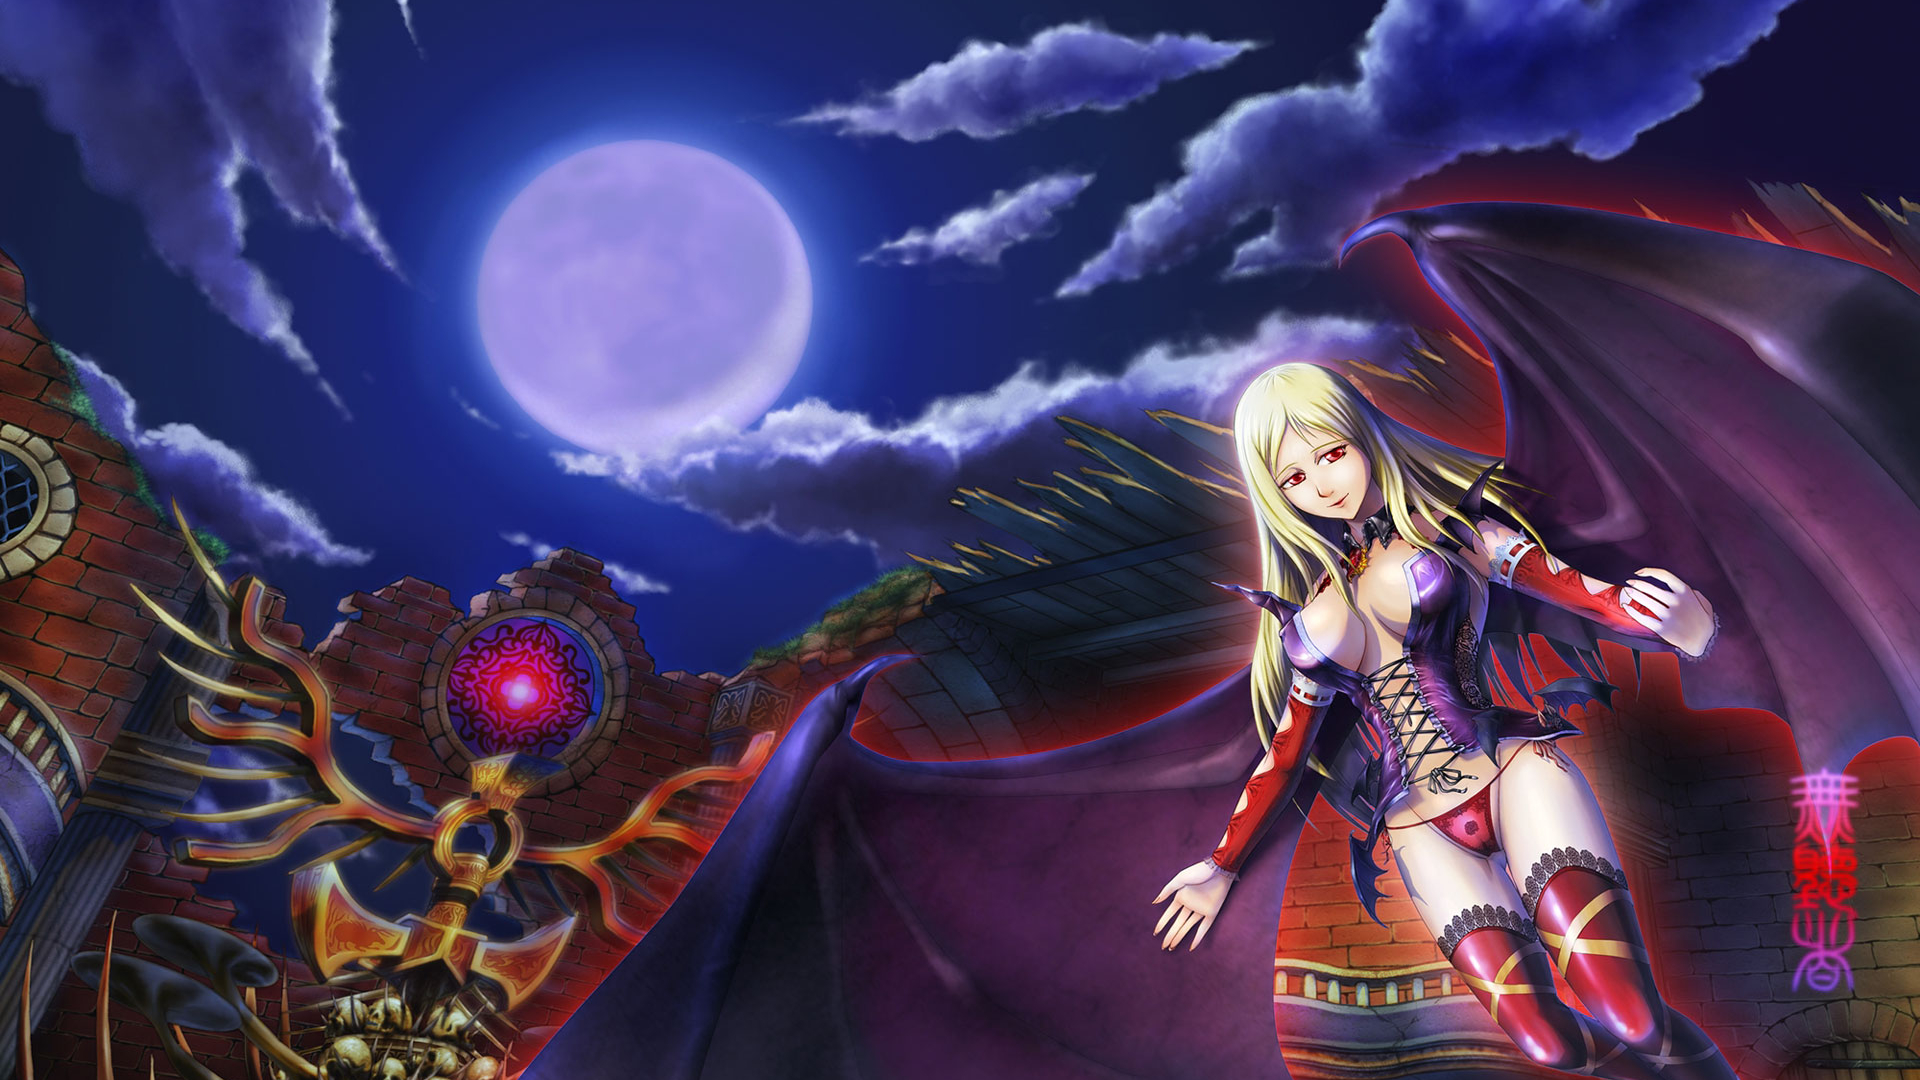 Free Download Castlevania The Dracula X Chronicles Wallpaper